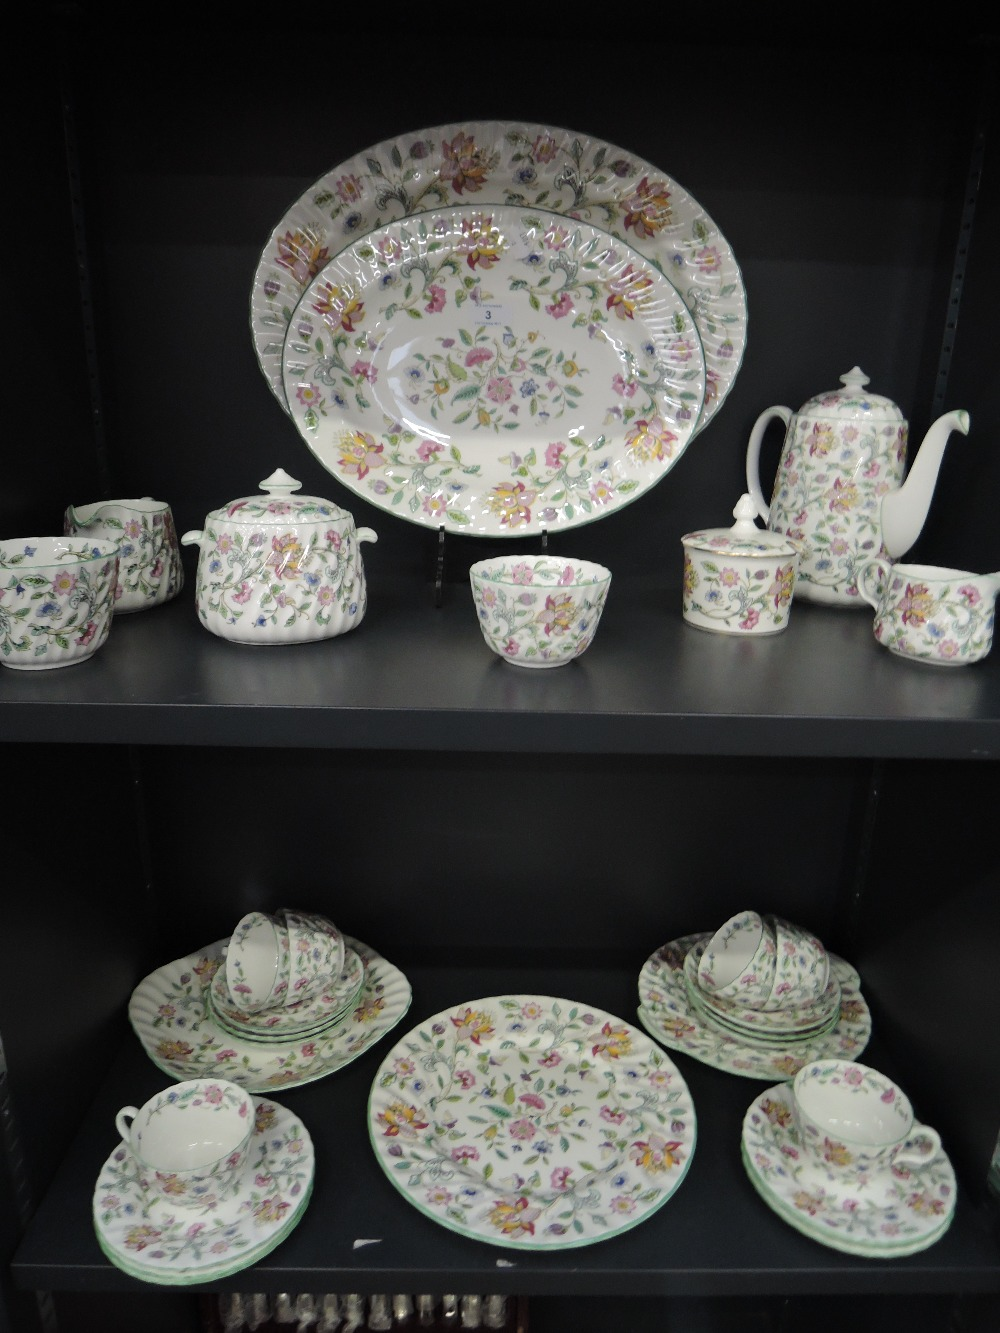 Lot 3 - A part tea and dinner service by Minton in the Haddon Hall design